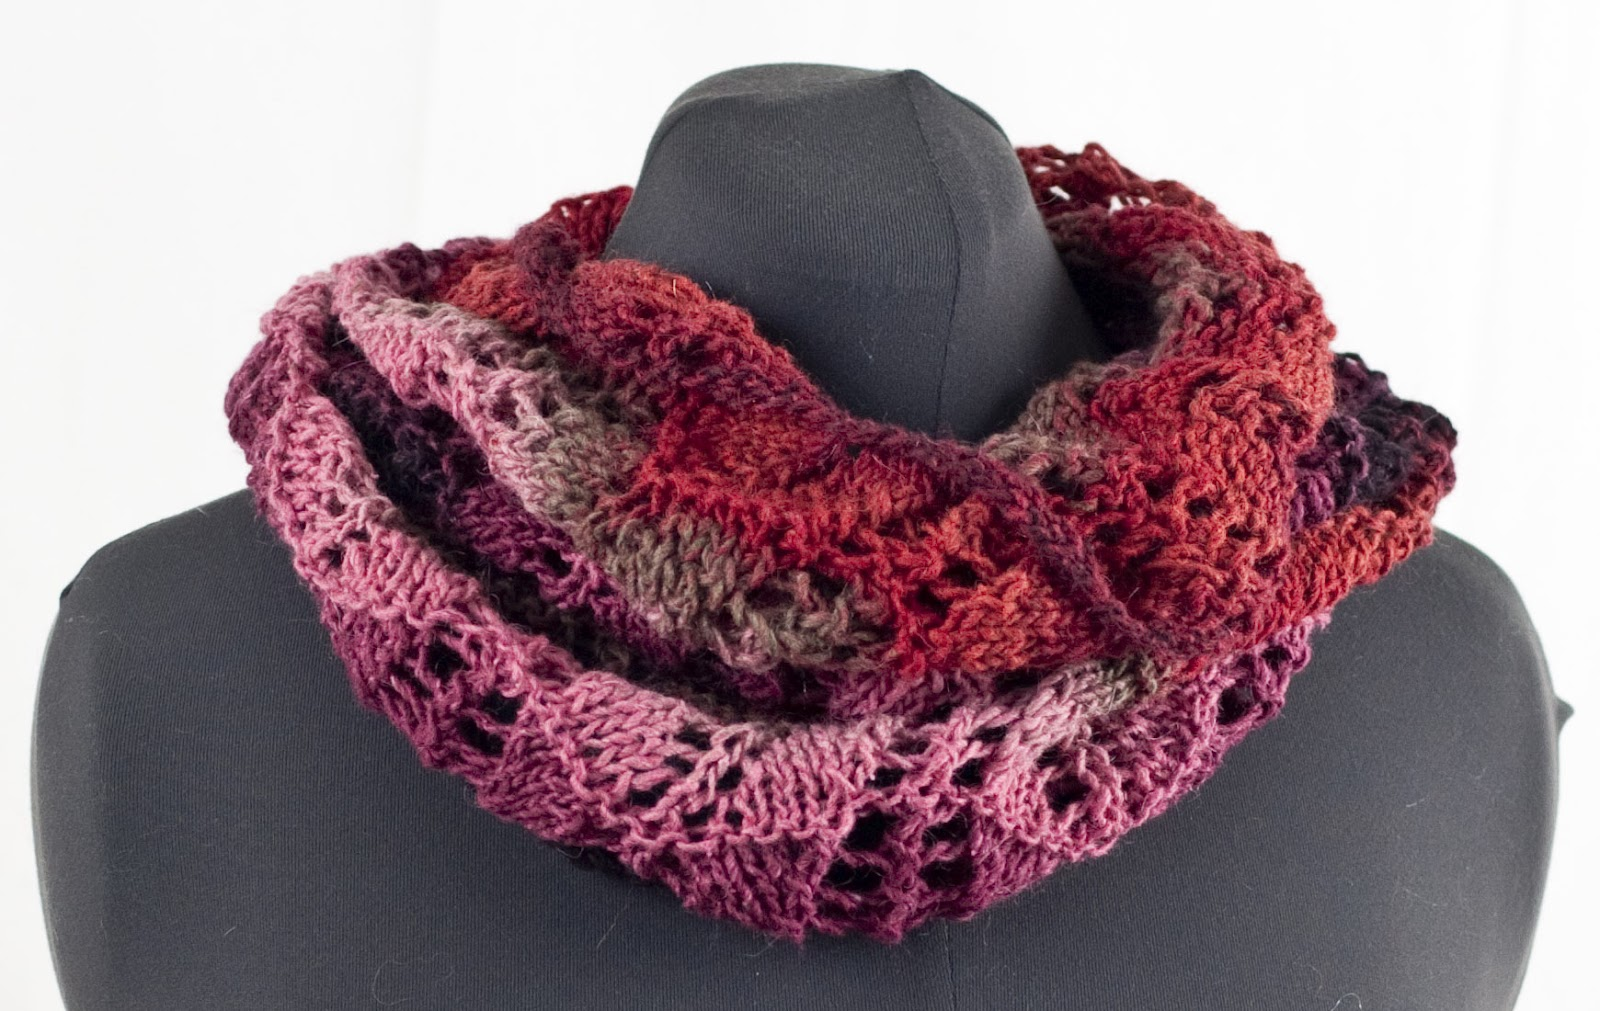 Cascade Yarns Blog: Casablanca Barred Scallop Cowl